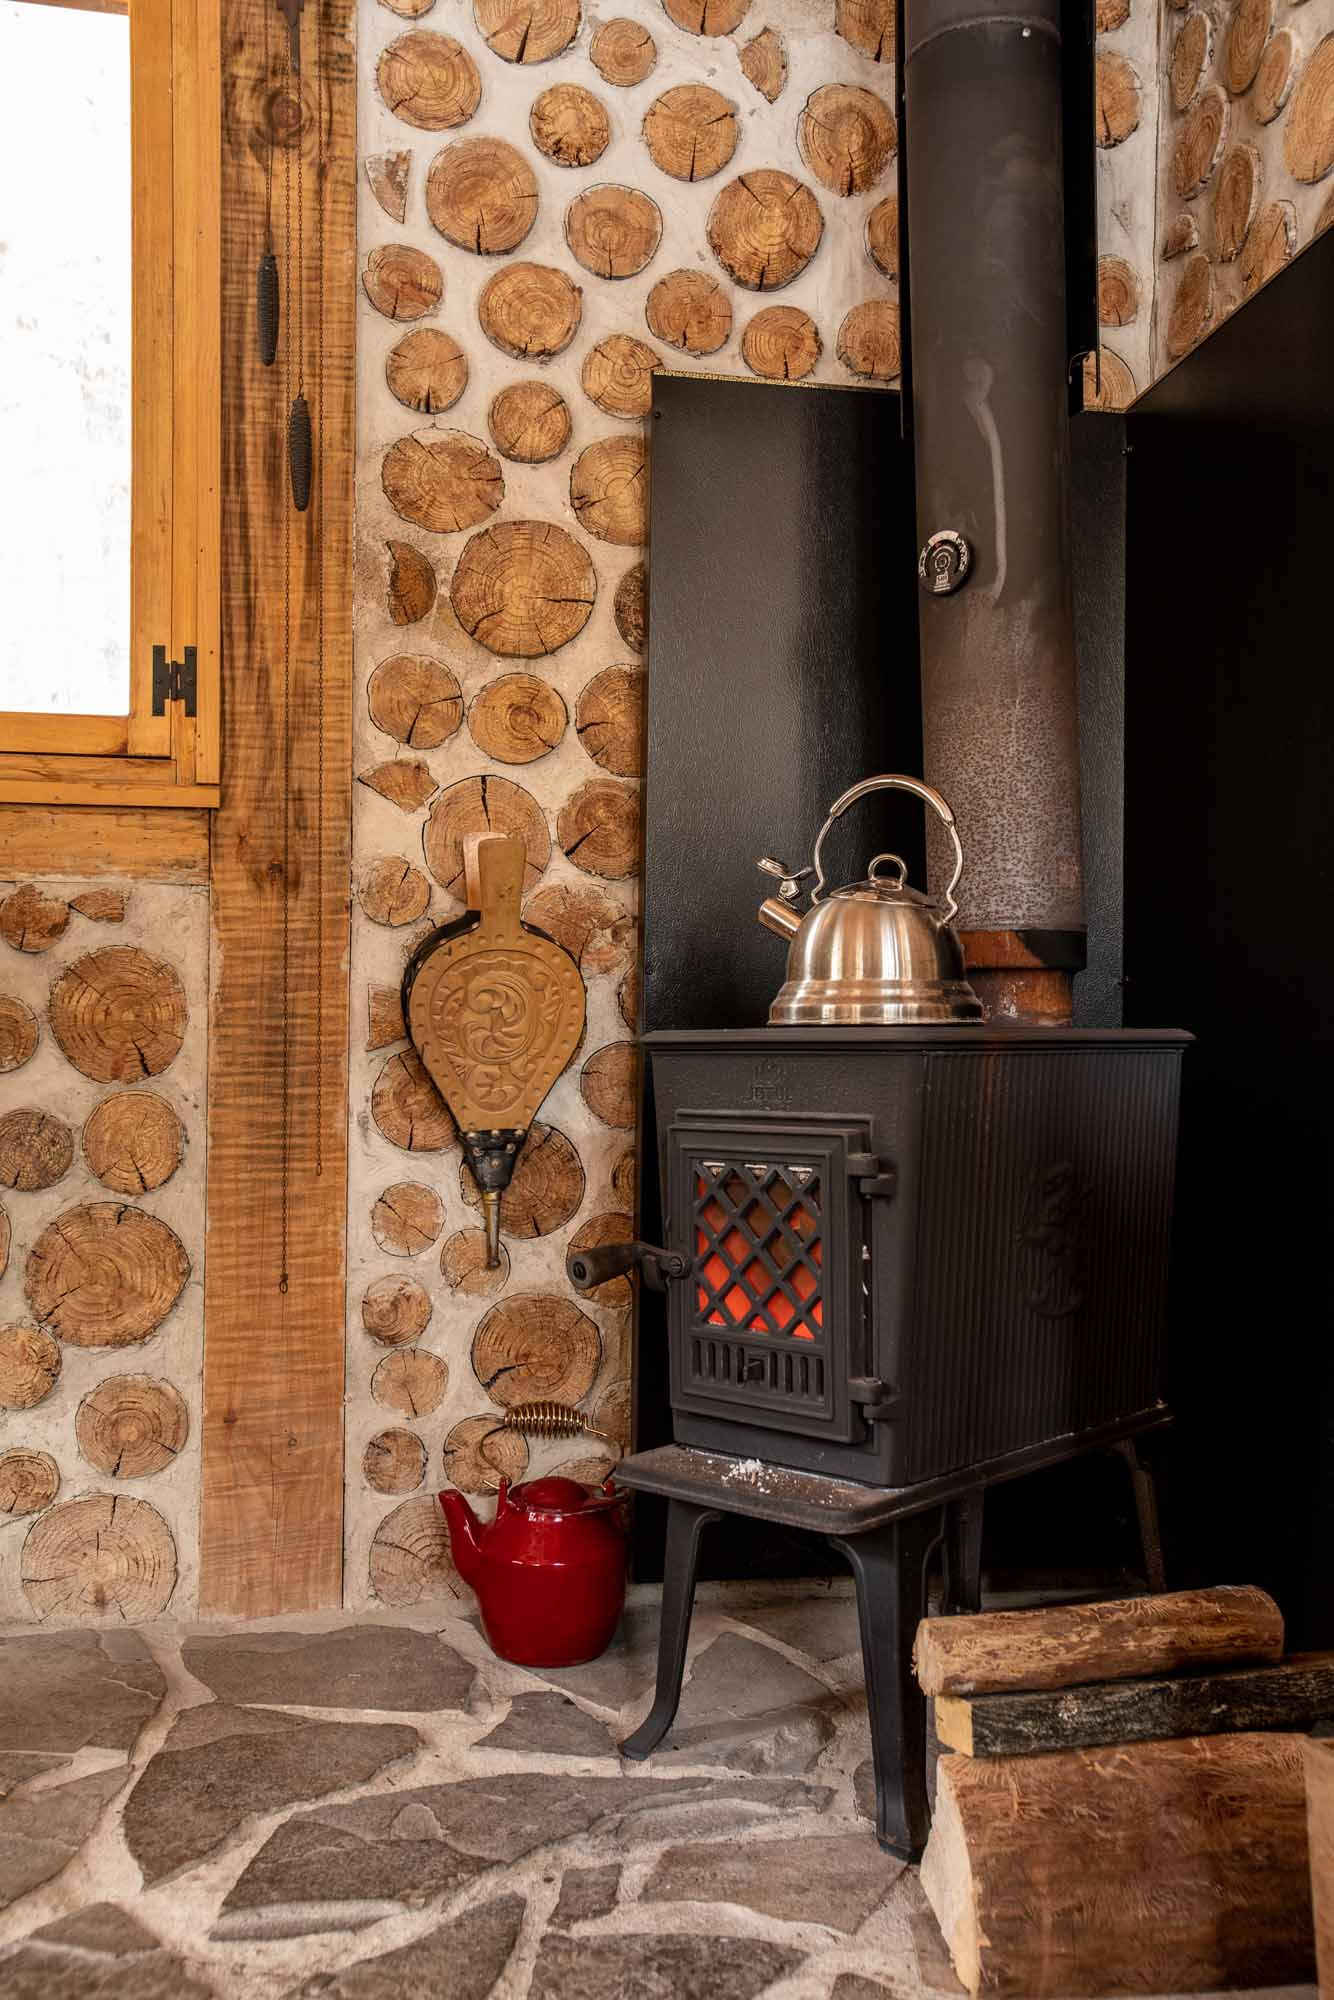 The-Cordwood-Cabin-An-Accessible-Retreat-from-the-21st-Century-woodstove-photo-by-Kristin-Schnelten